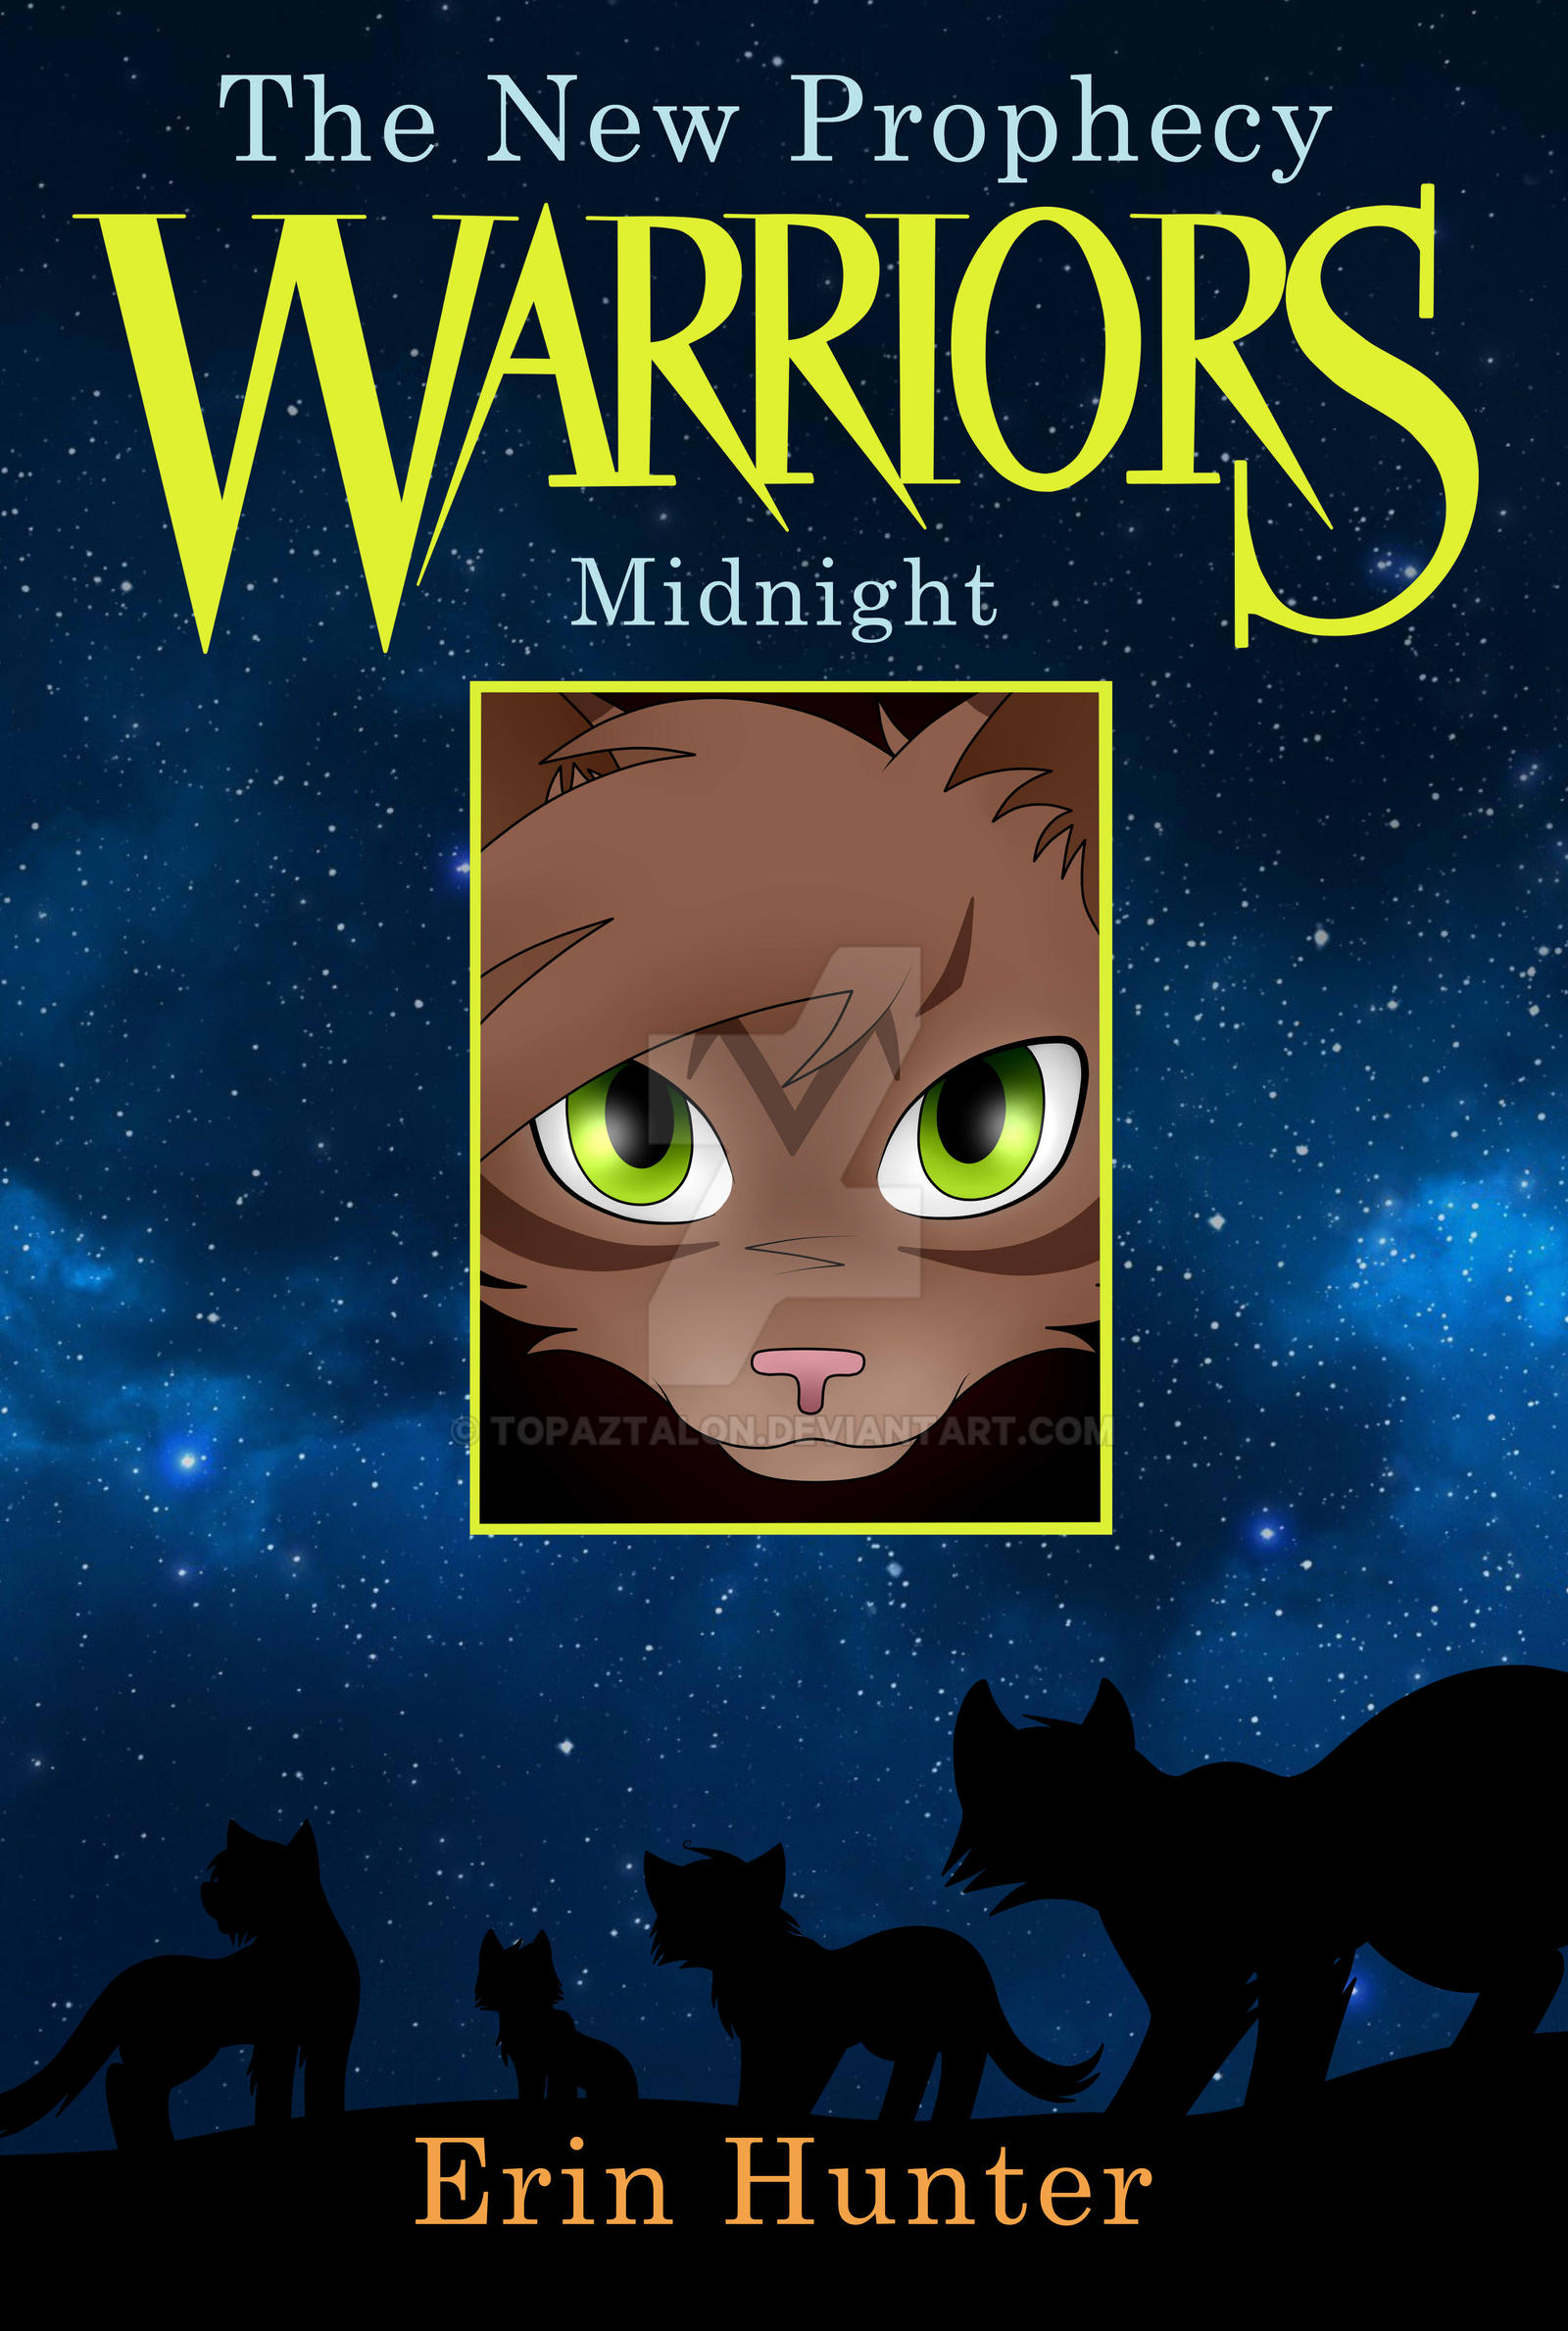 Warrior Cats Book Cover Maker